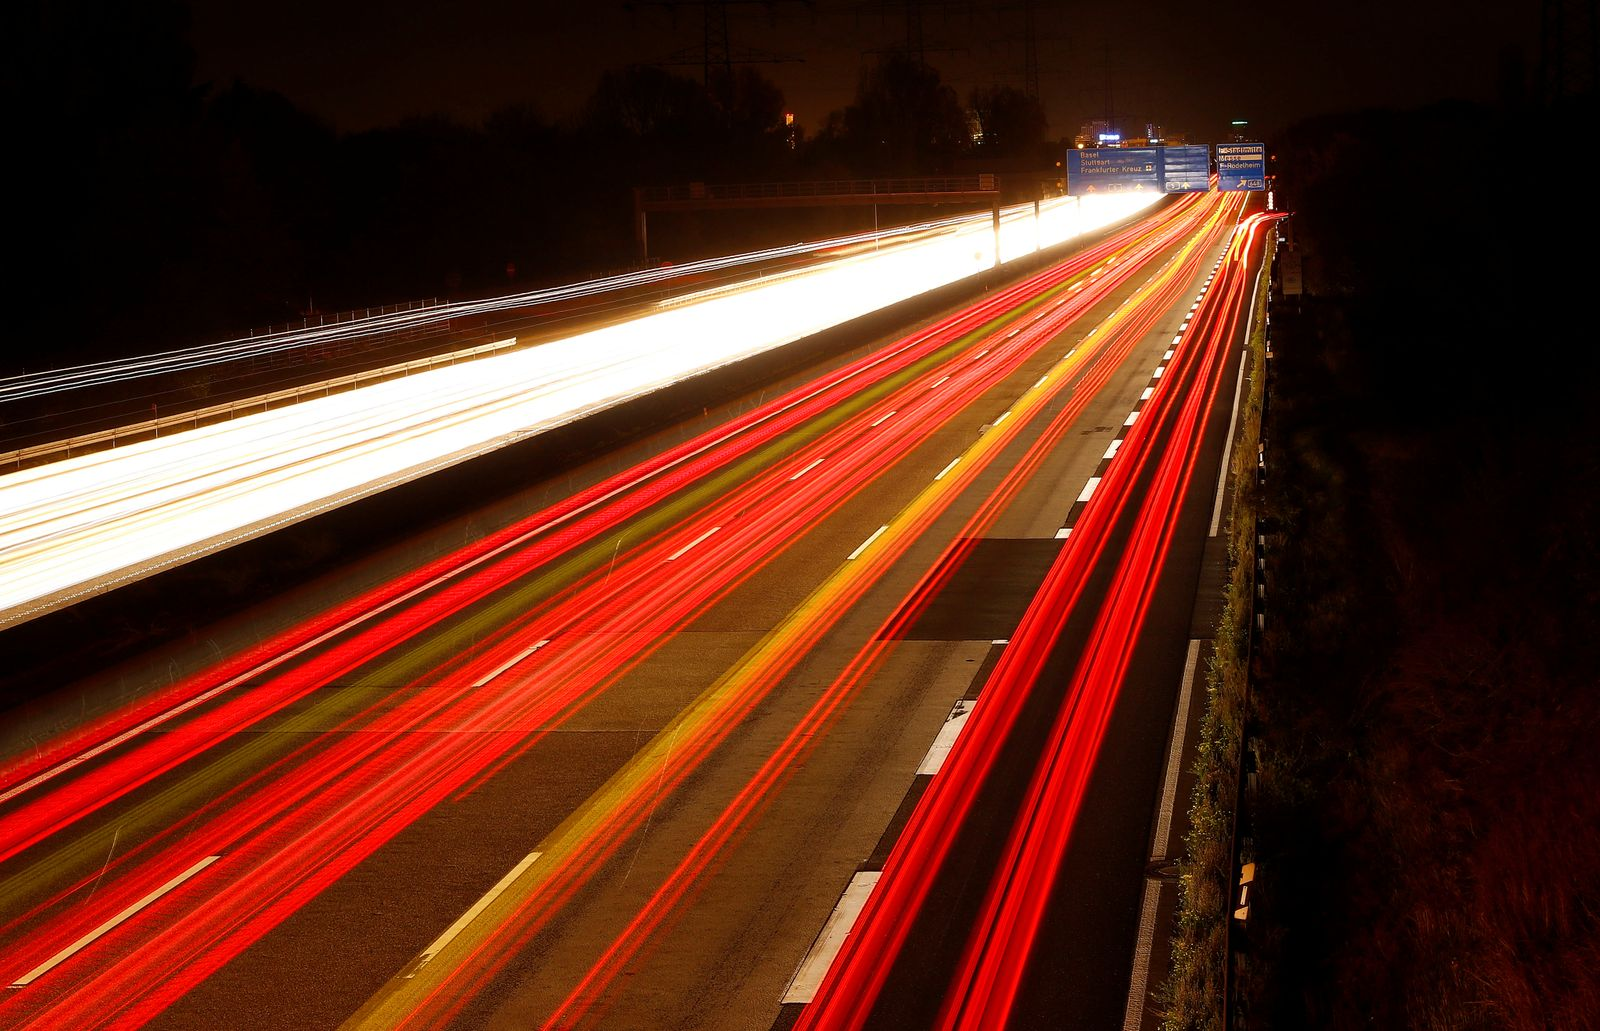 Cars are pictured on long time exposure on highway A5 in Frankfurt